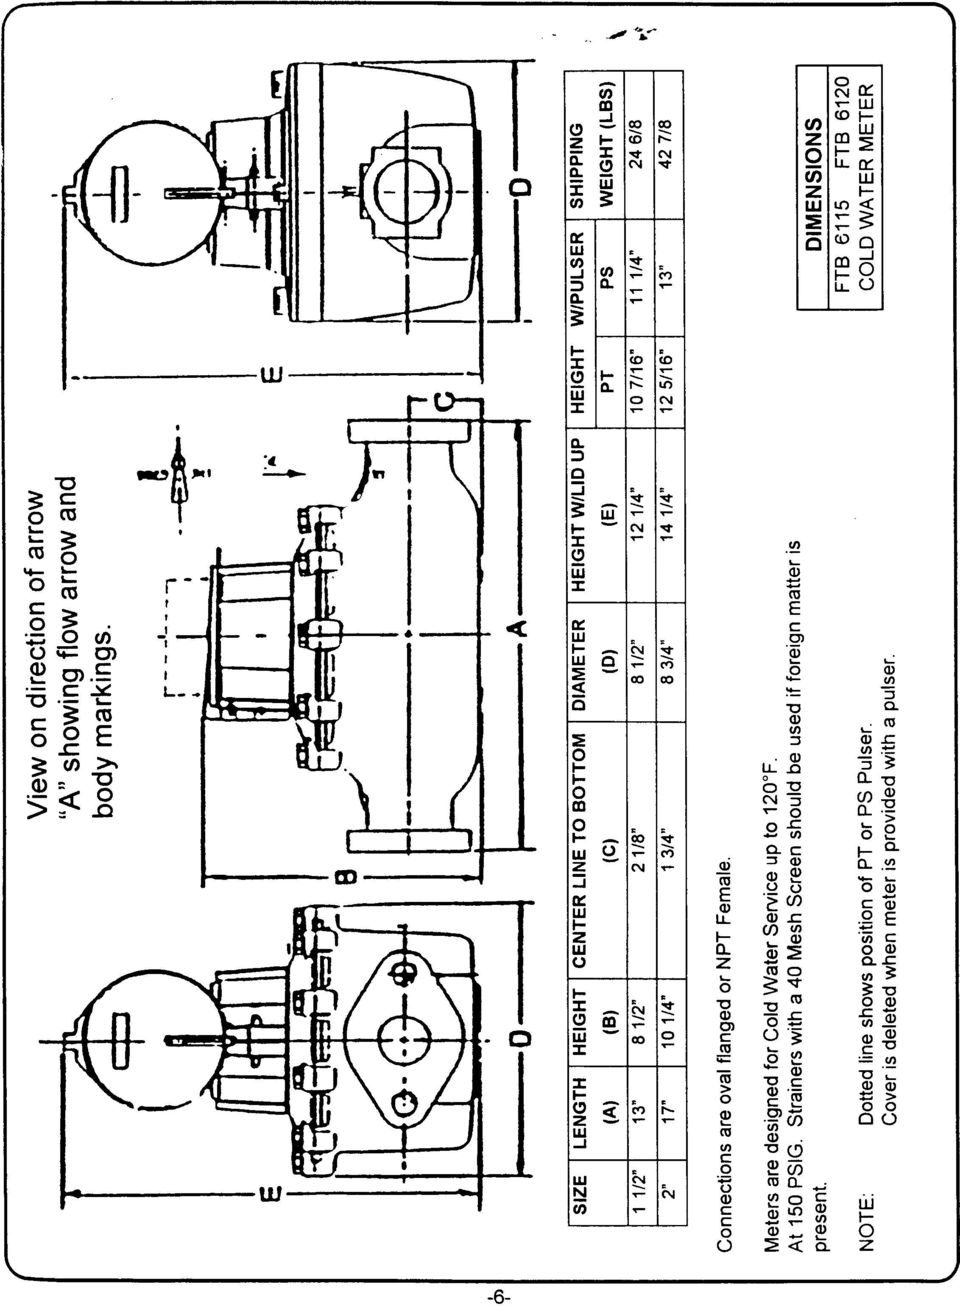 Irldustrial Positive Displacement Cold Water Meters Ftb6205 Shown Meter Diagram 14 L 4 12 5116 13 Connections Are Oval Flanged O Npt Female